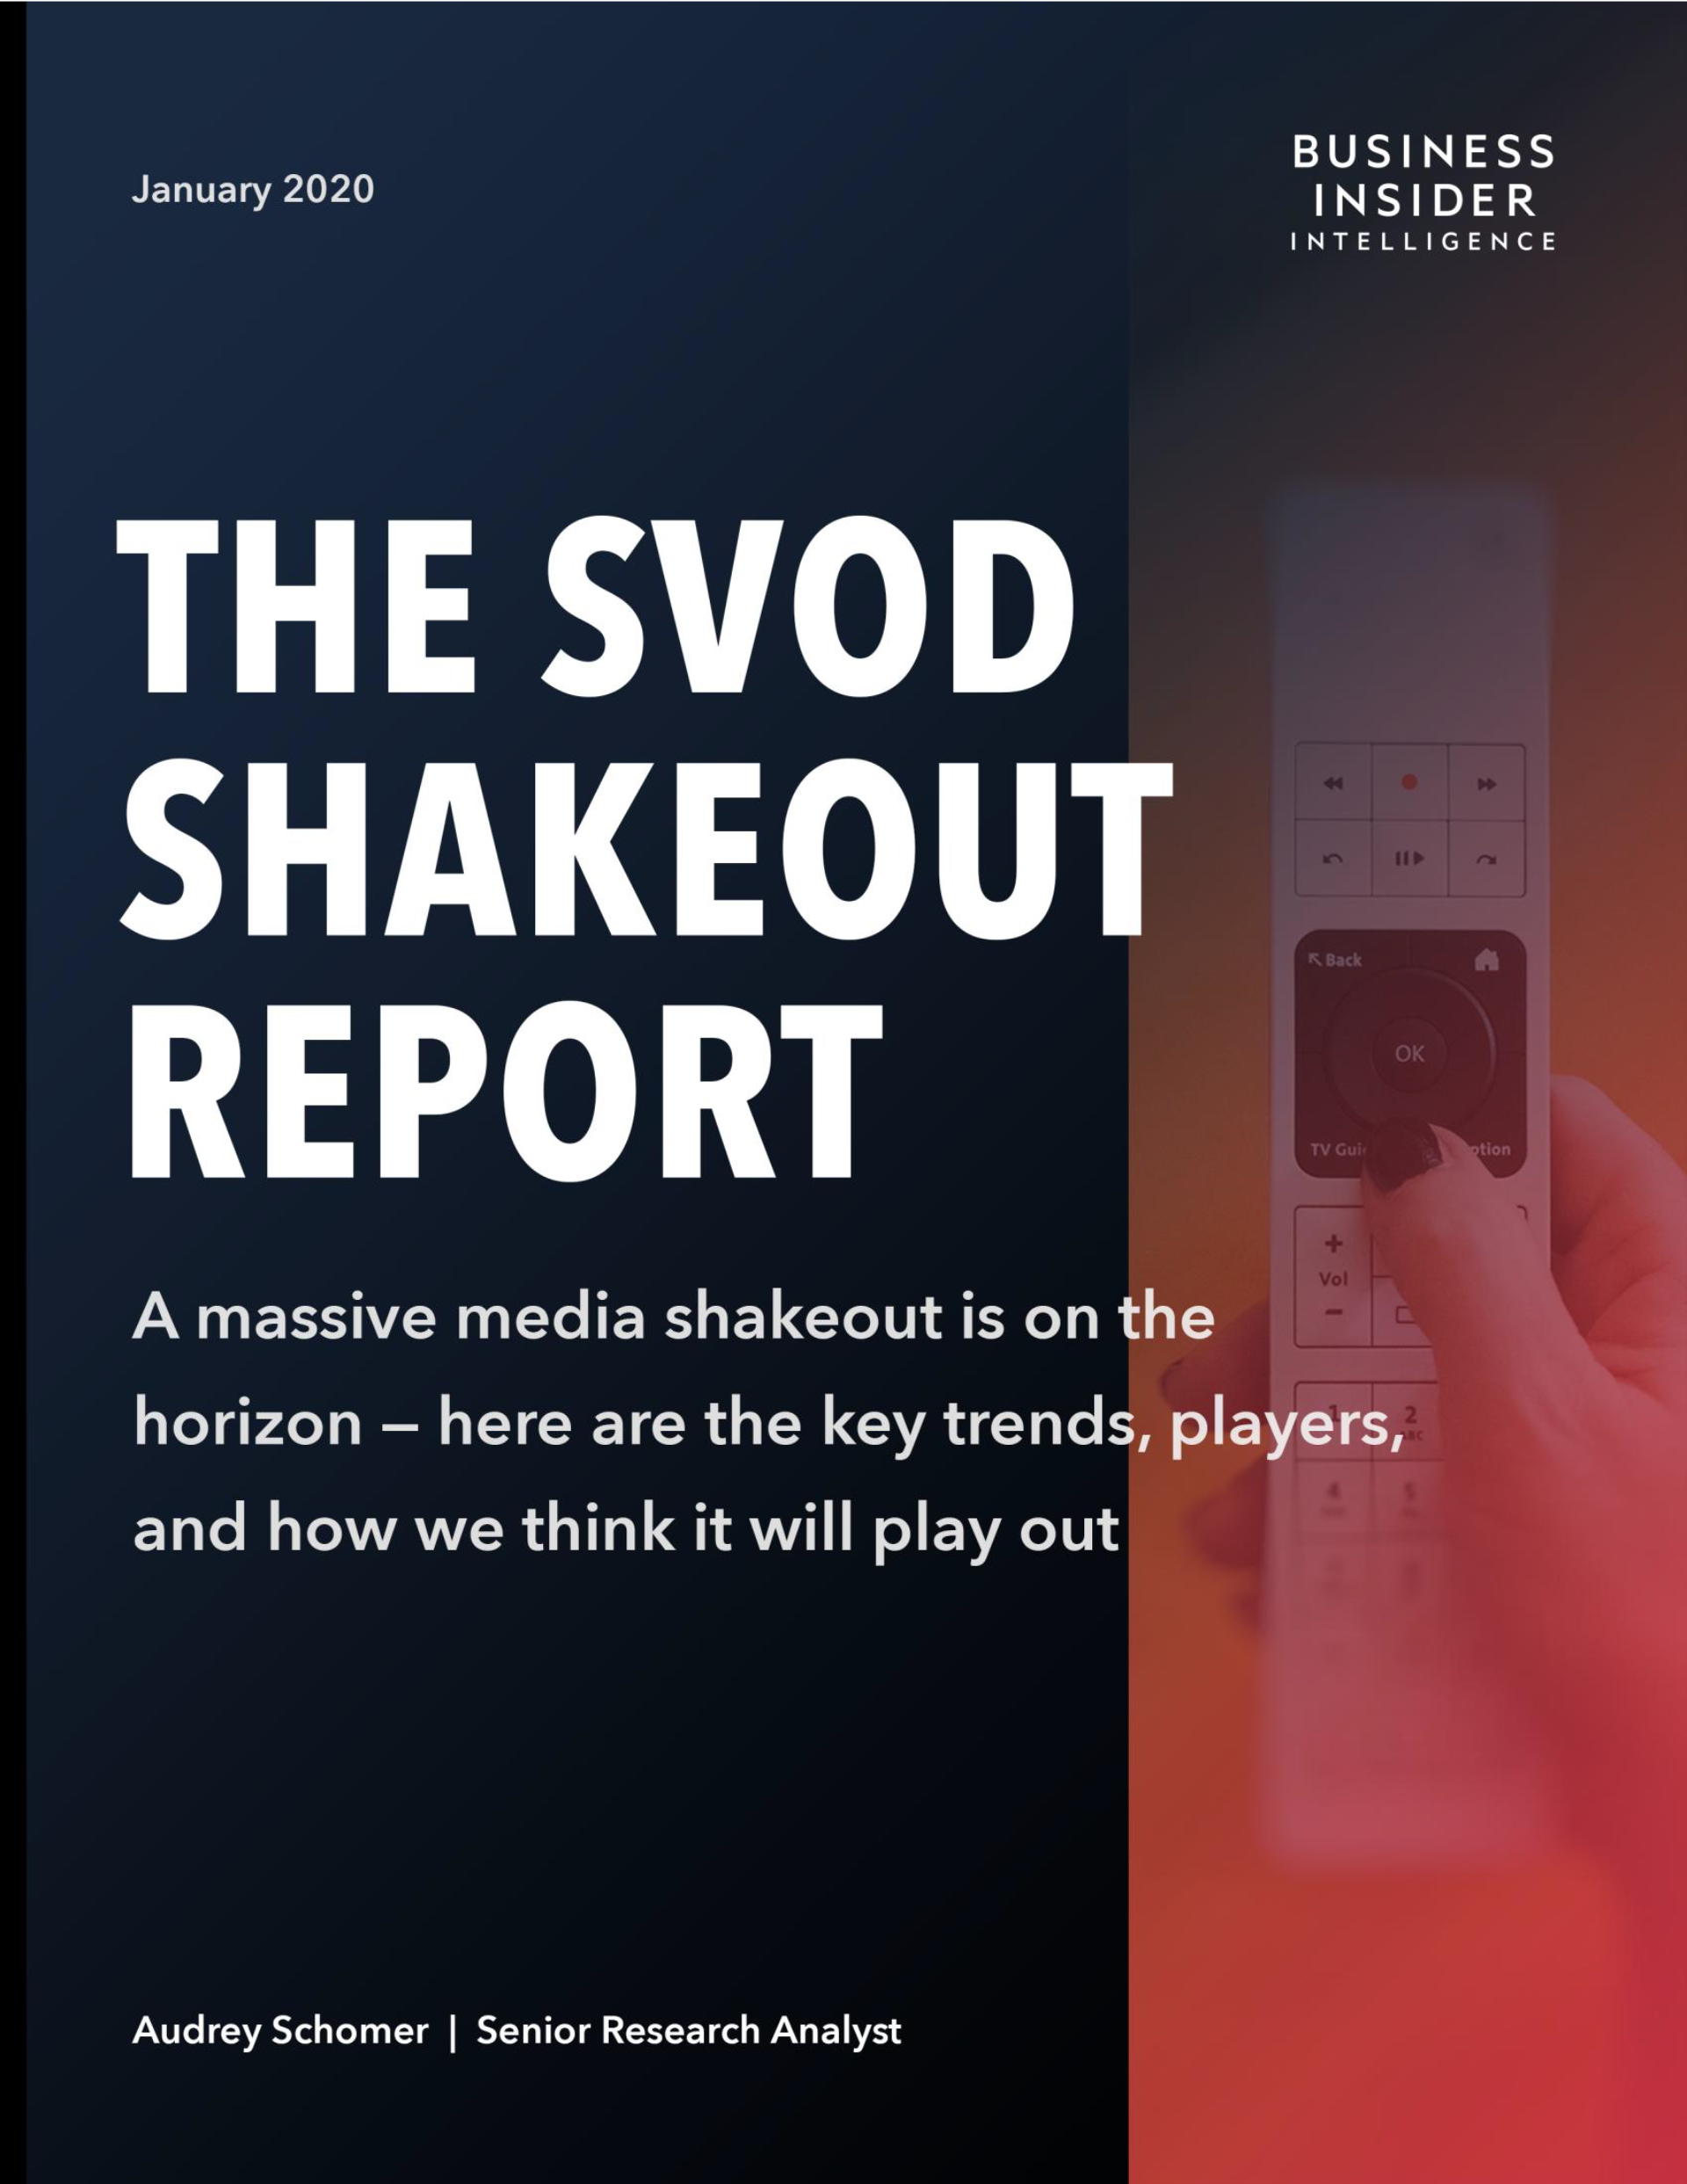 The SVOD Shakeout Report